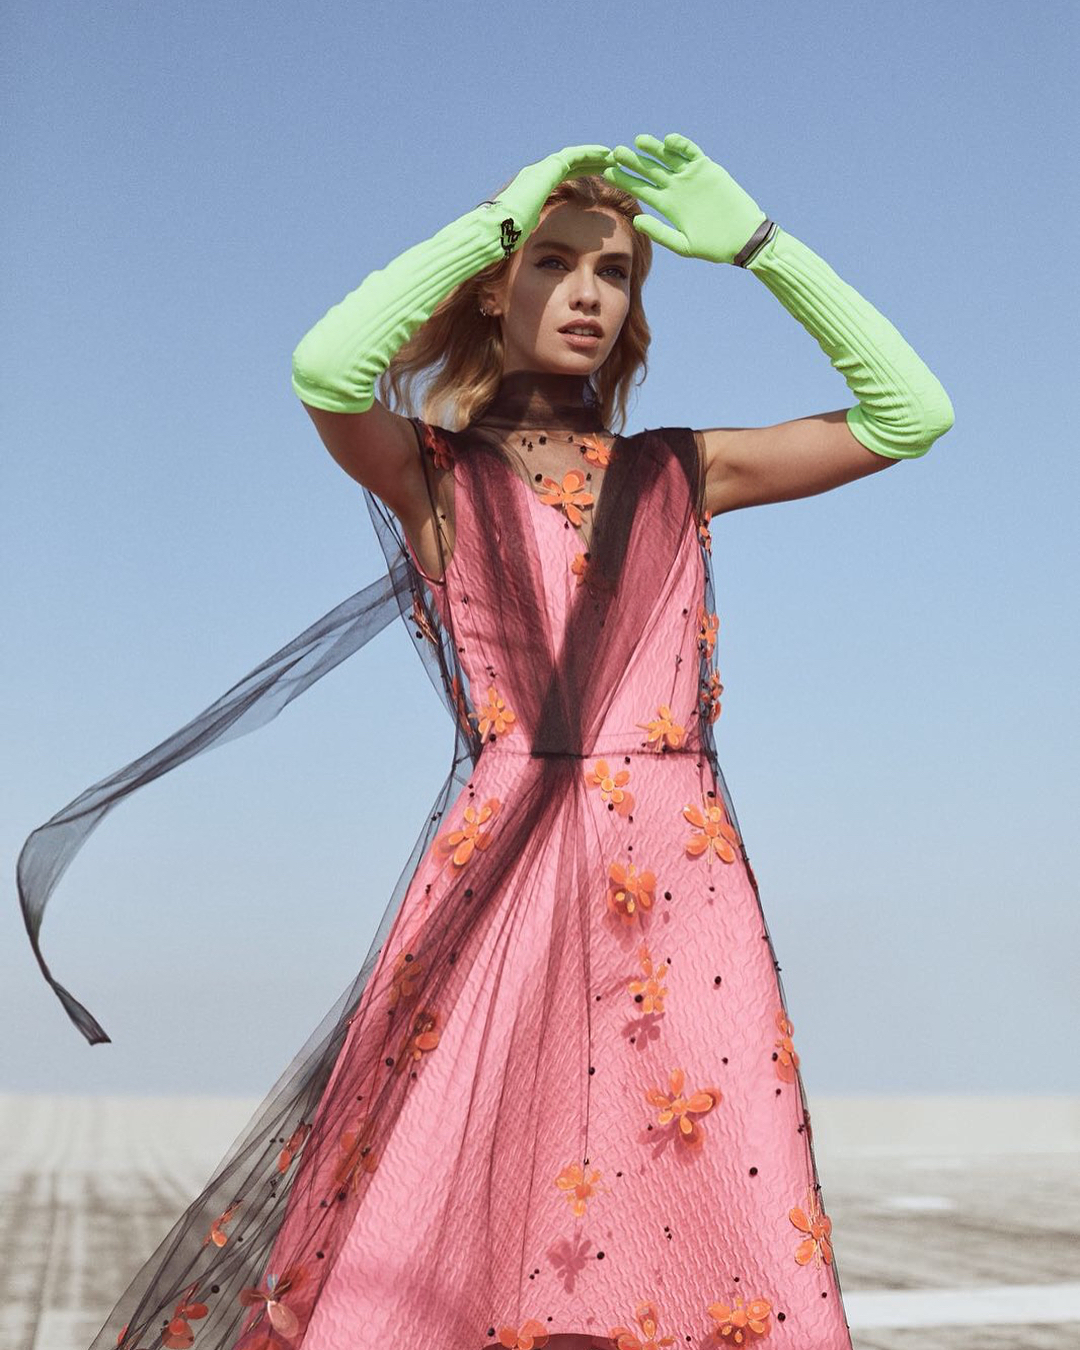 Stella Maxwell Wearing Pink Dress With Light Green Elbow Gloves For Numero Tokio 2019